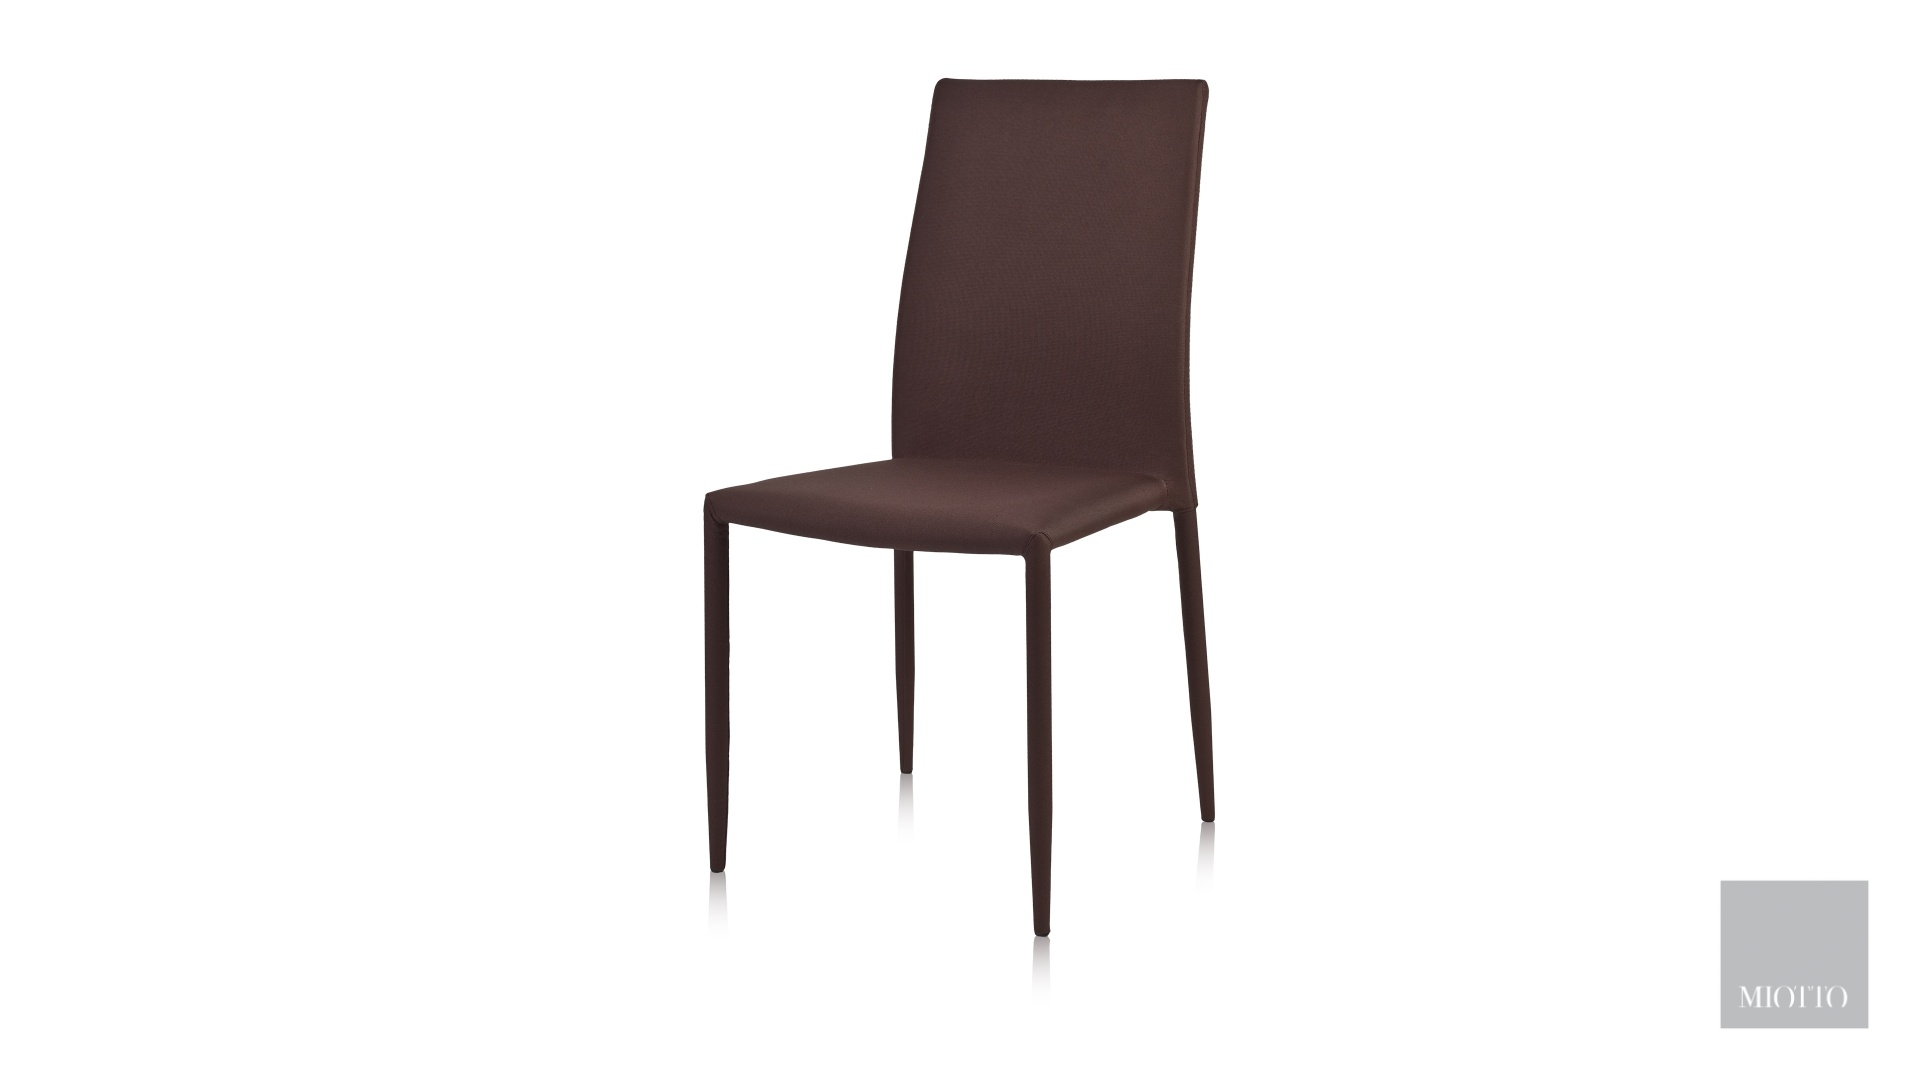 miotto_Lara fabric dining chair brown miotto furniture